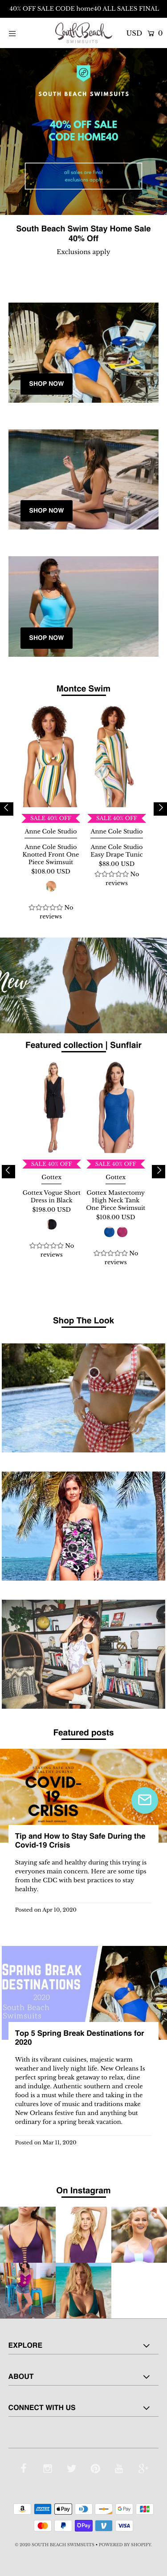 South Beach Swimsuits Coupon